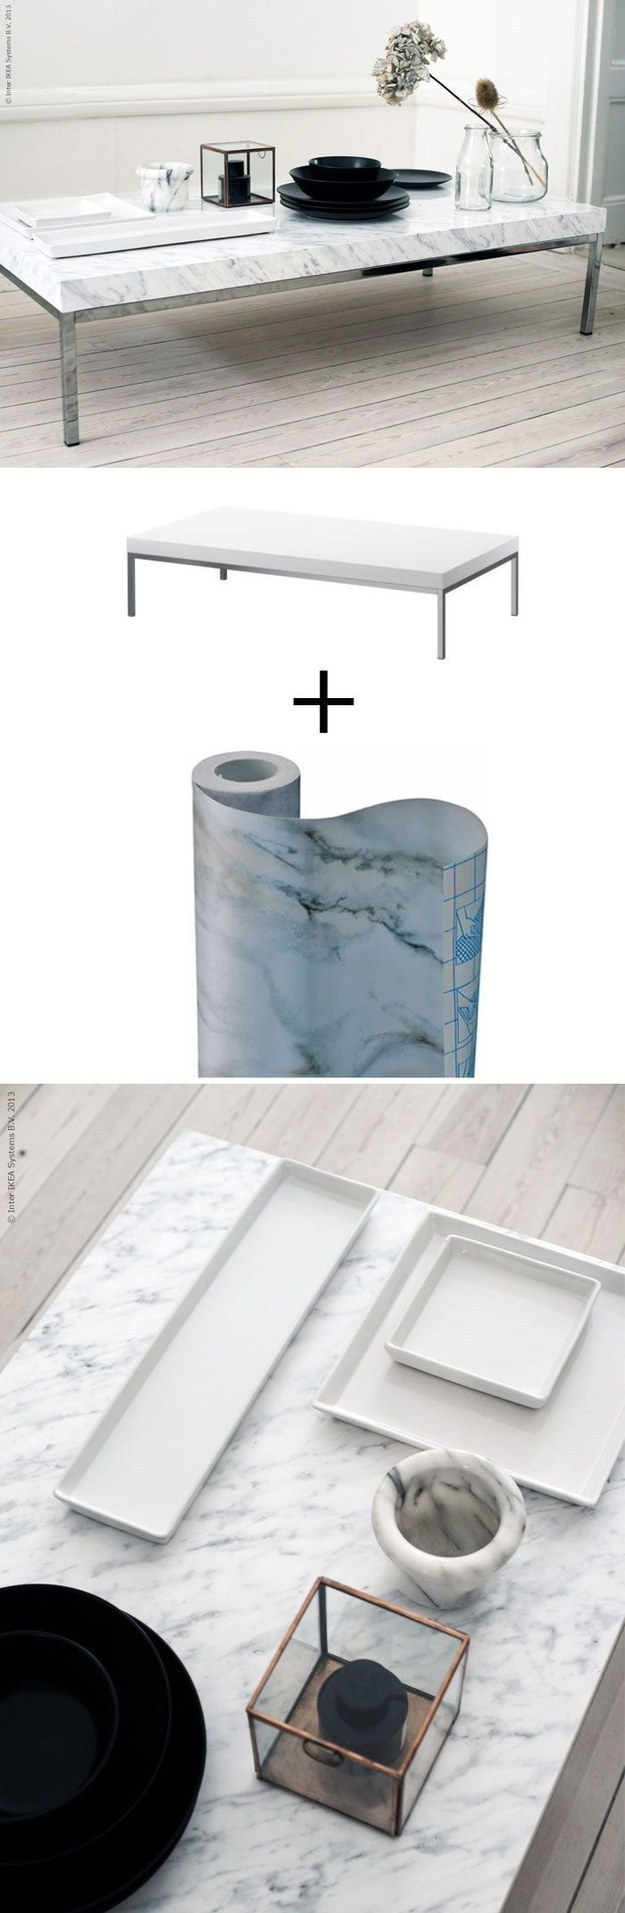 Ikea Furniture Hacks marble table Handy Mano ManoMano Mano Mano Handymano